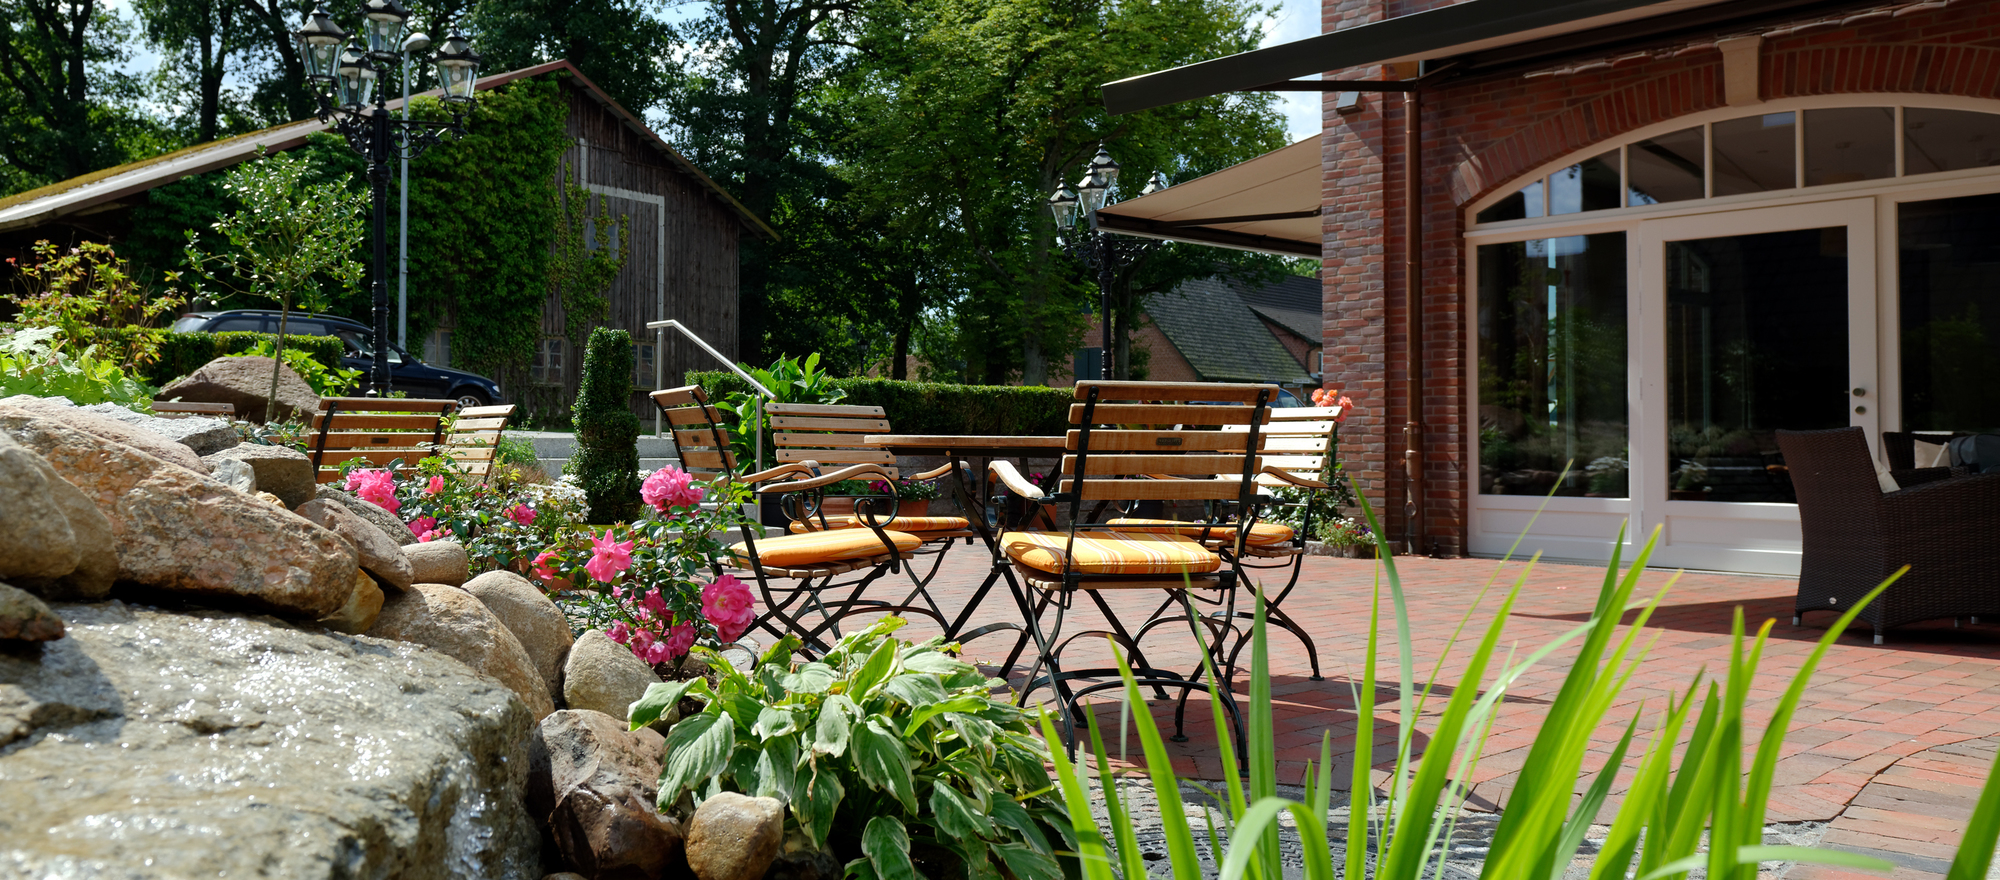 Coffee garden in the Ringhotel Sellhorn in Hanstedt, 4-stars hotel in de Lueneburg Heath